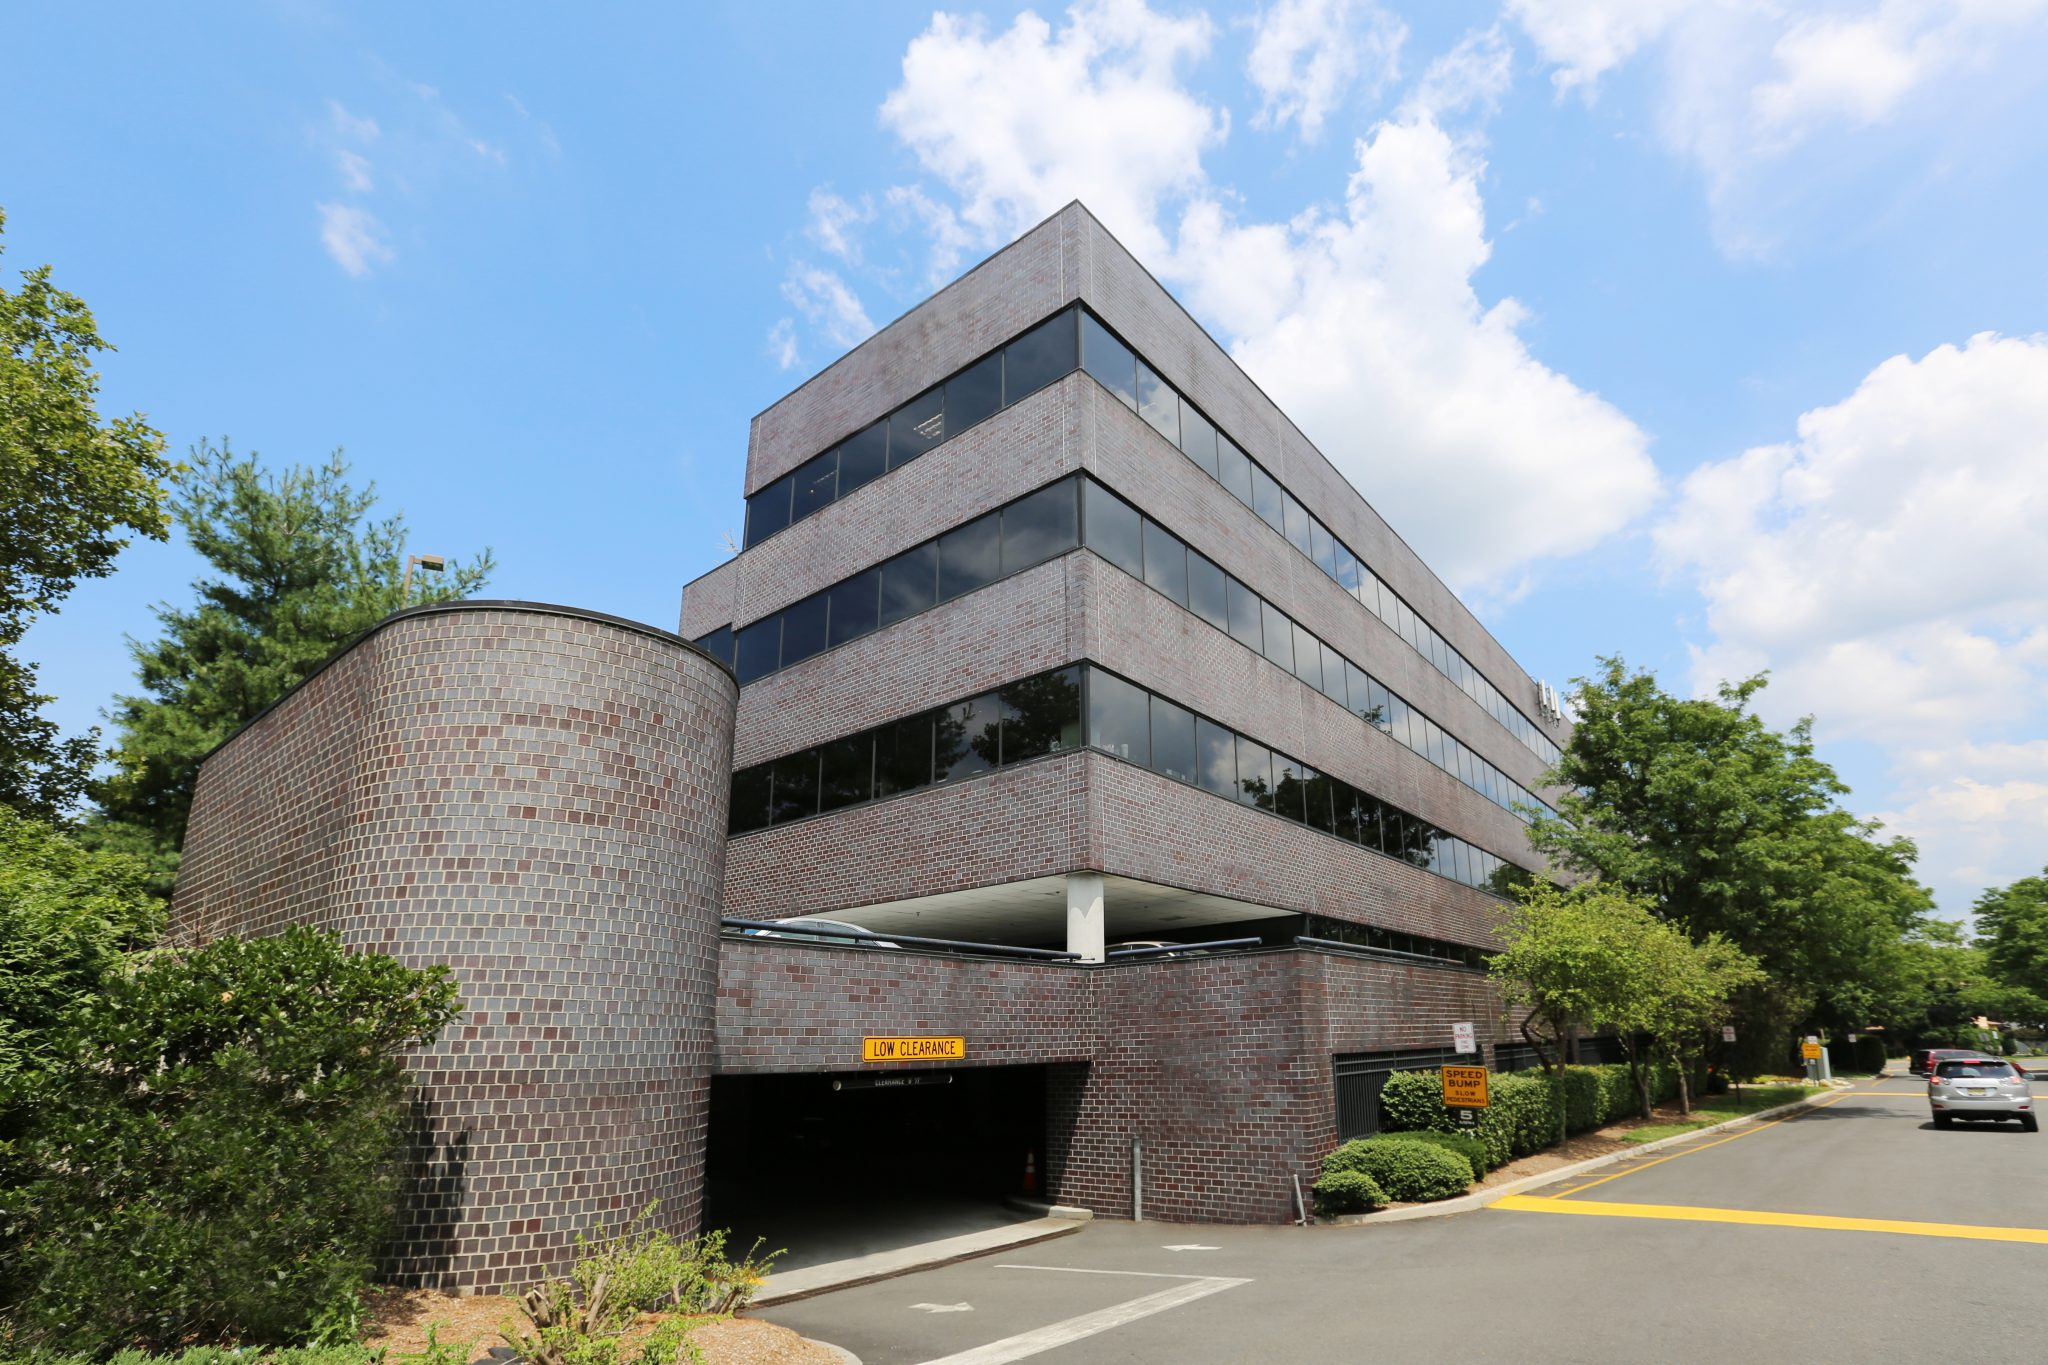 218 Route 17 North – Rochelle Park, NJ 07662 – 15,814 sq. ft.